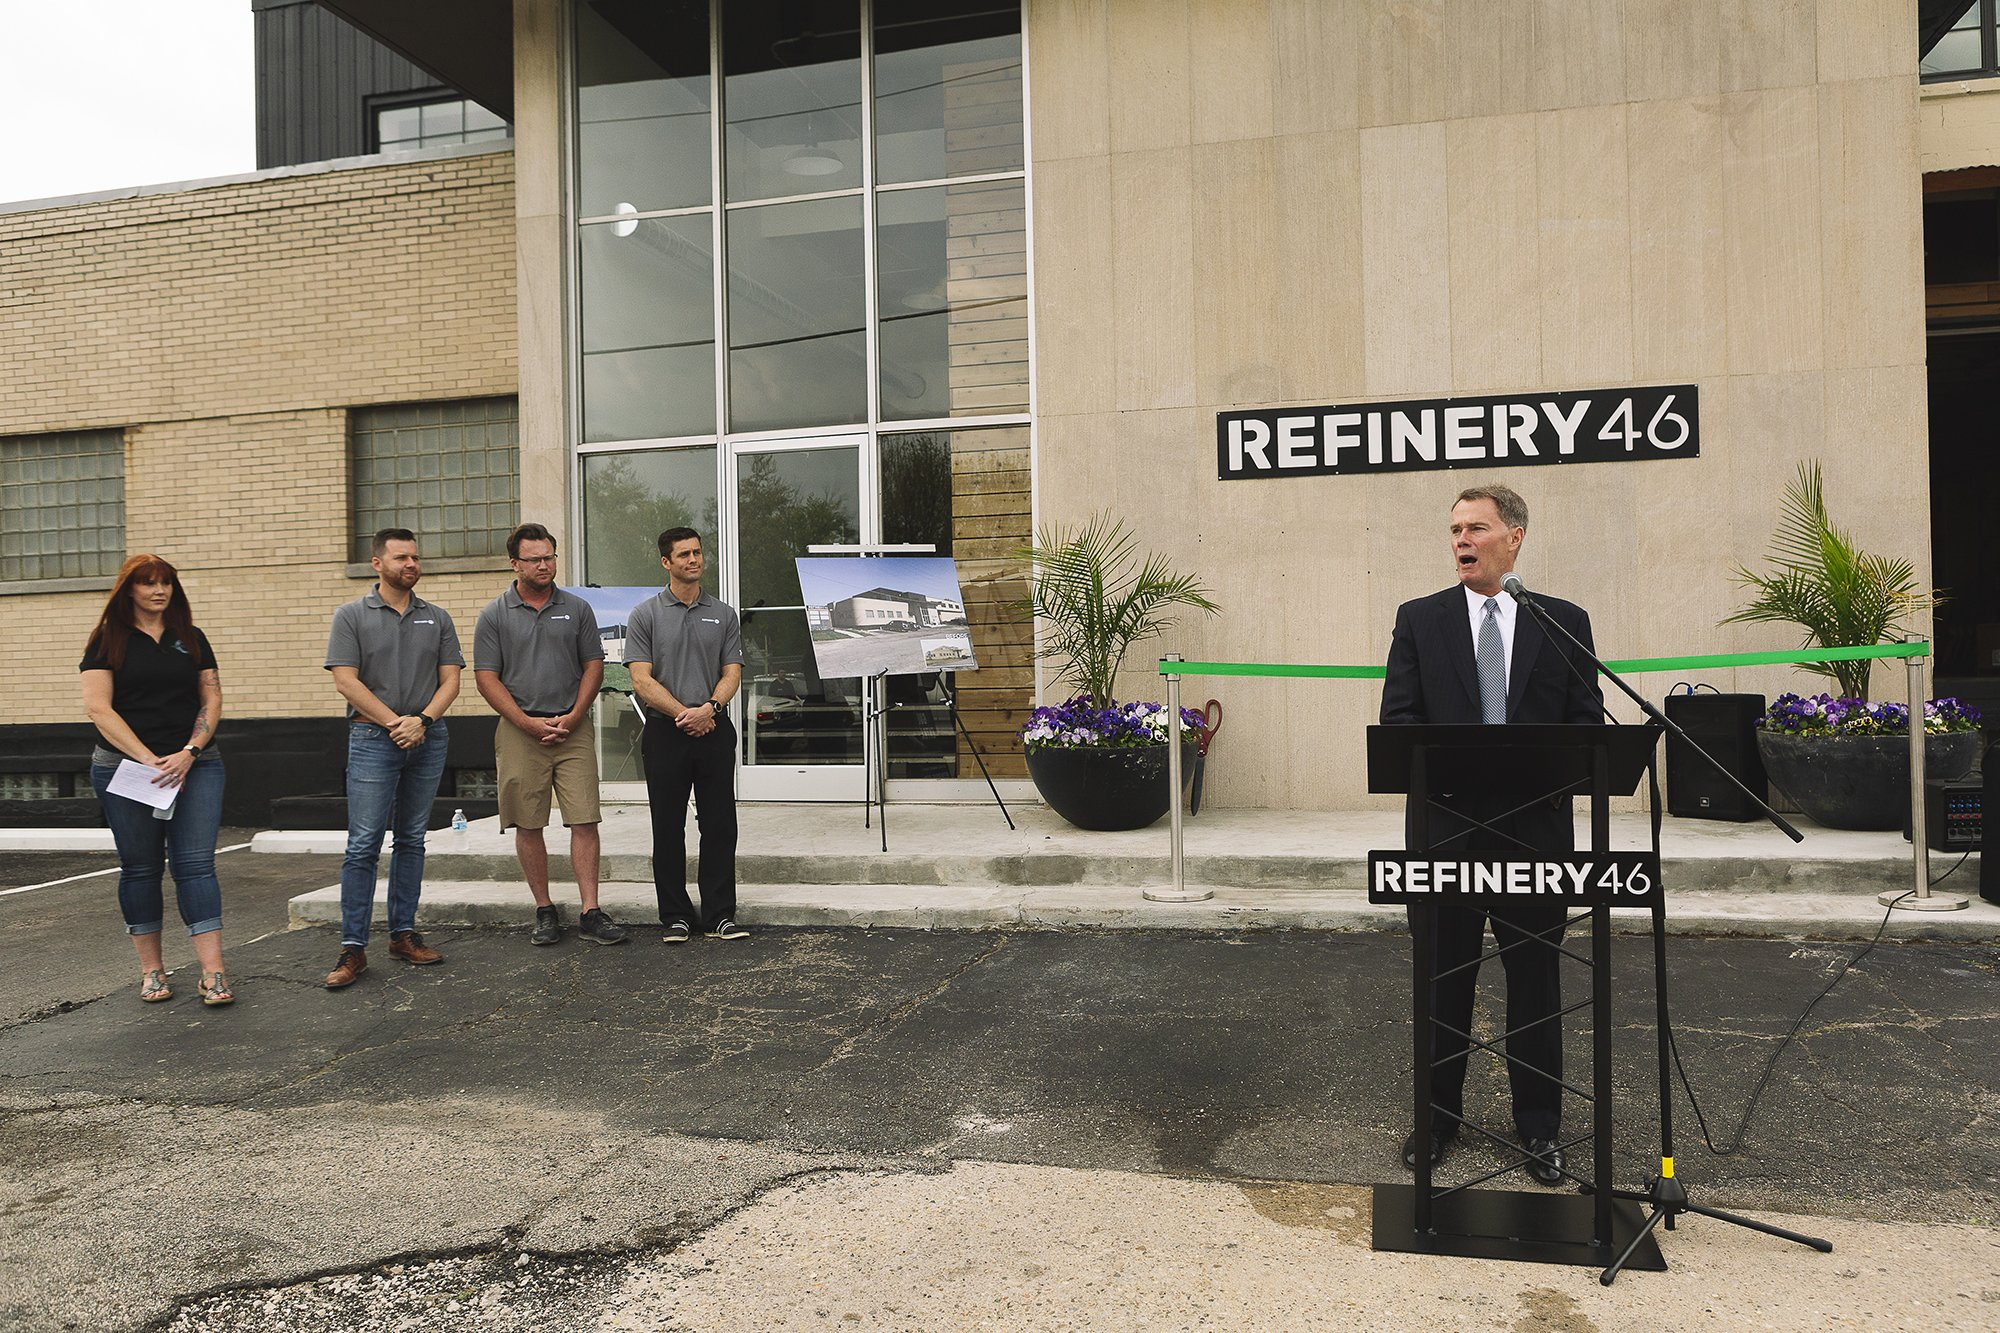 Corporate Event Photography - Refinery 46 Ribbon Cutting - Indianapolis Mayor Hogsett - 17